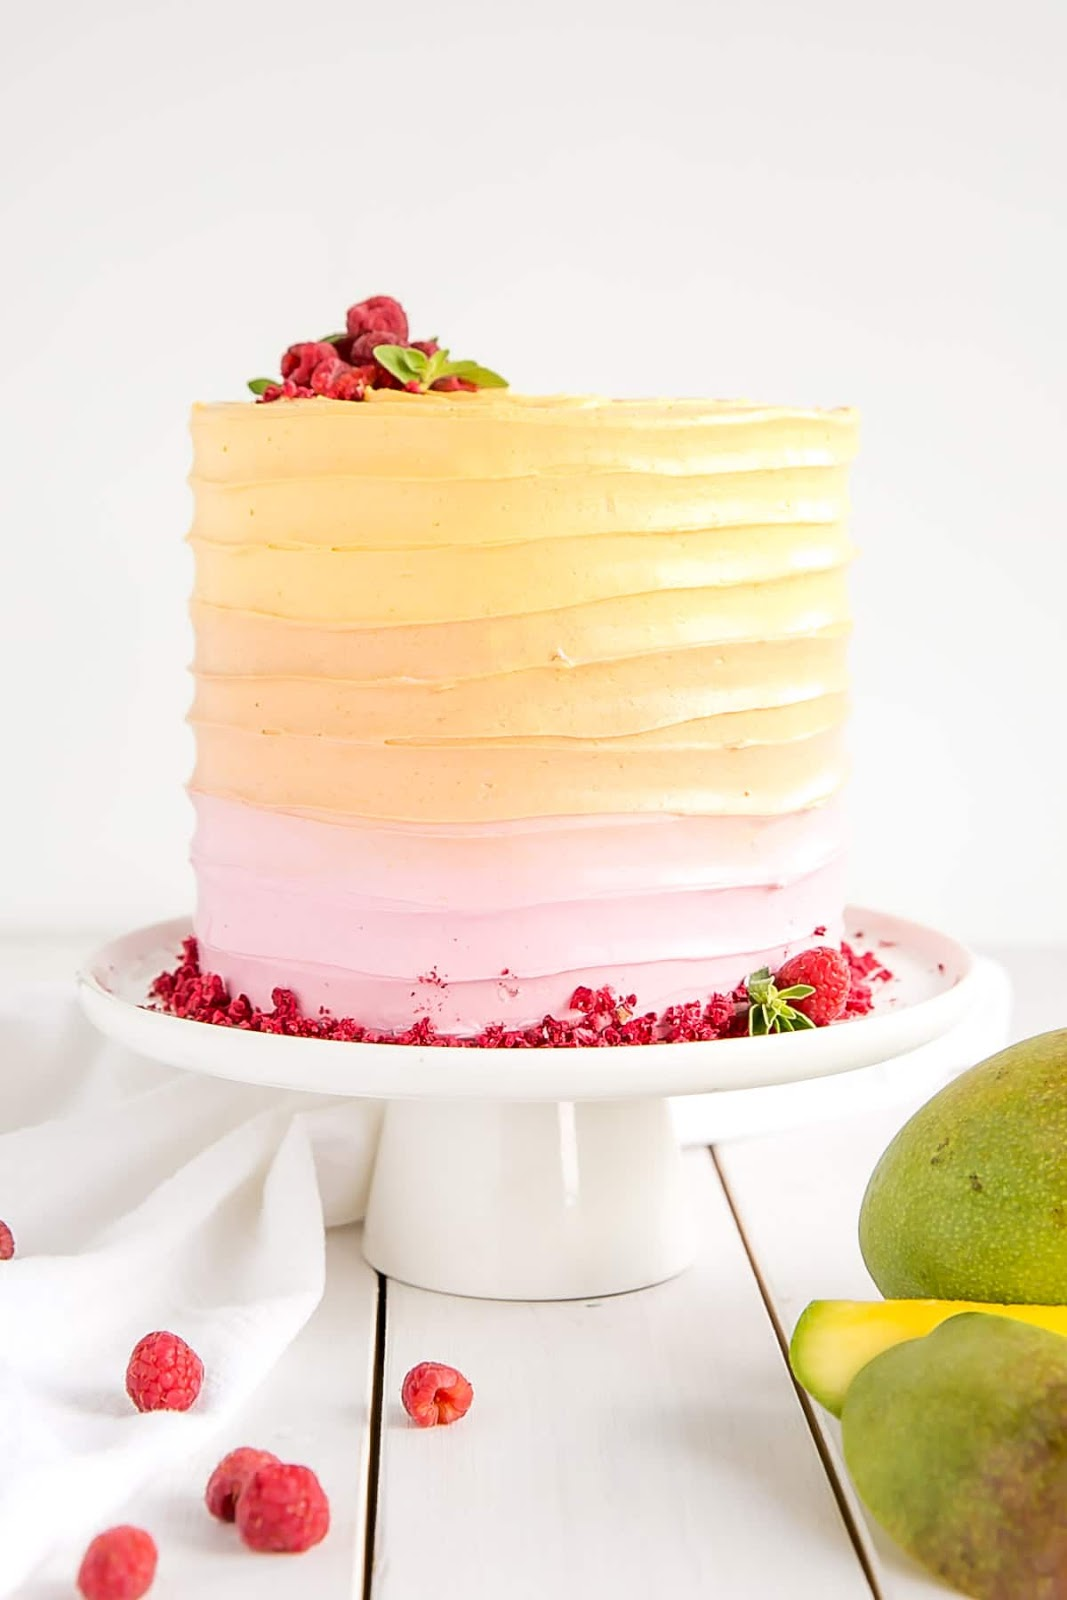 Raspberry Mango Cake - This Raspberry Mango Cake is the perfect way to celebrate the summer months. Raspberry cake layers and a heavenly mango frosting.